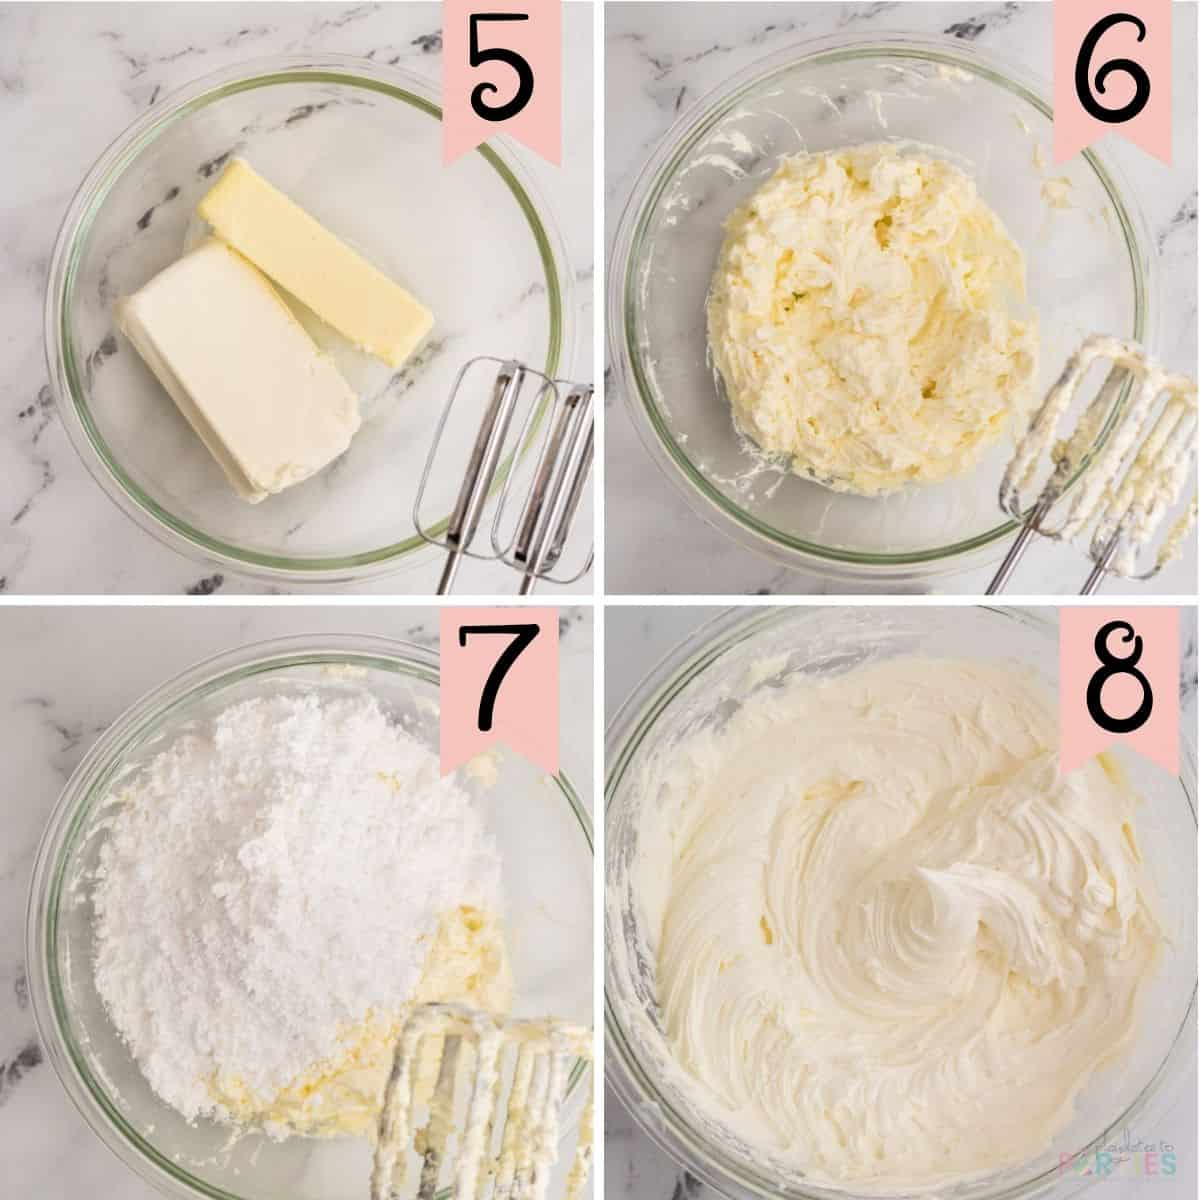 Collage of steps 5 through 8: showing how to make cream cheese frosting from scratch